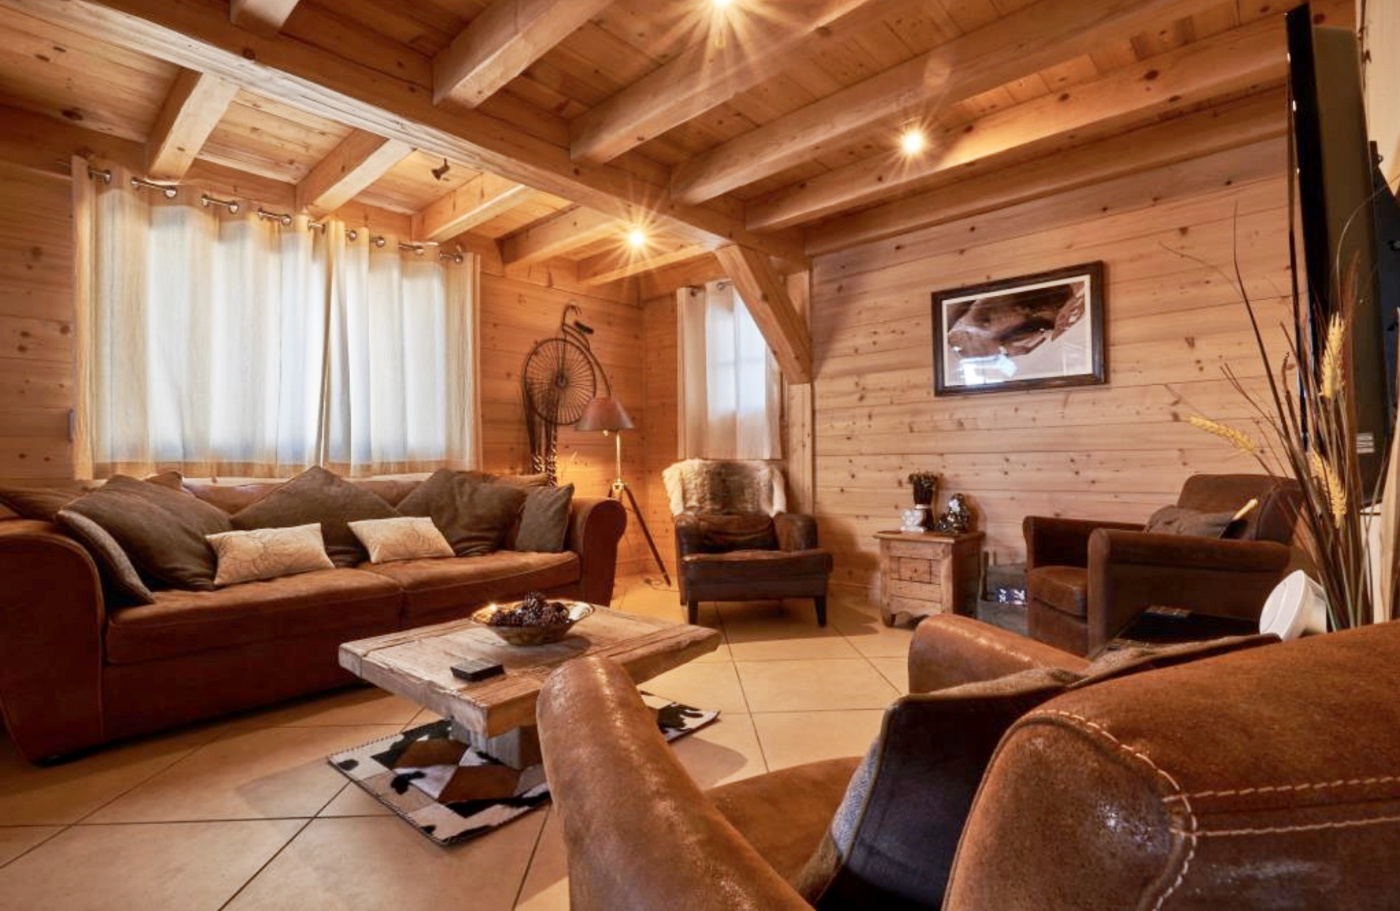 Chalet for Sale near Morzine France